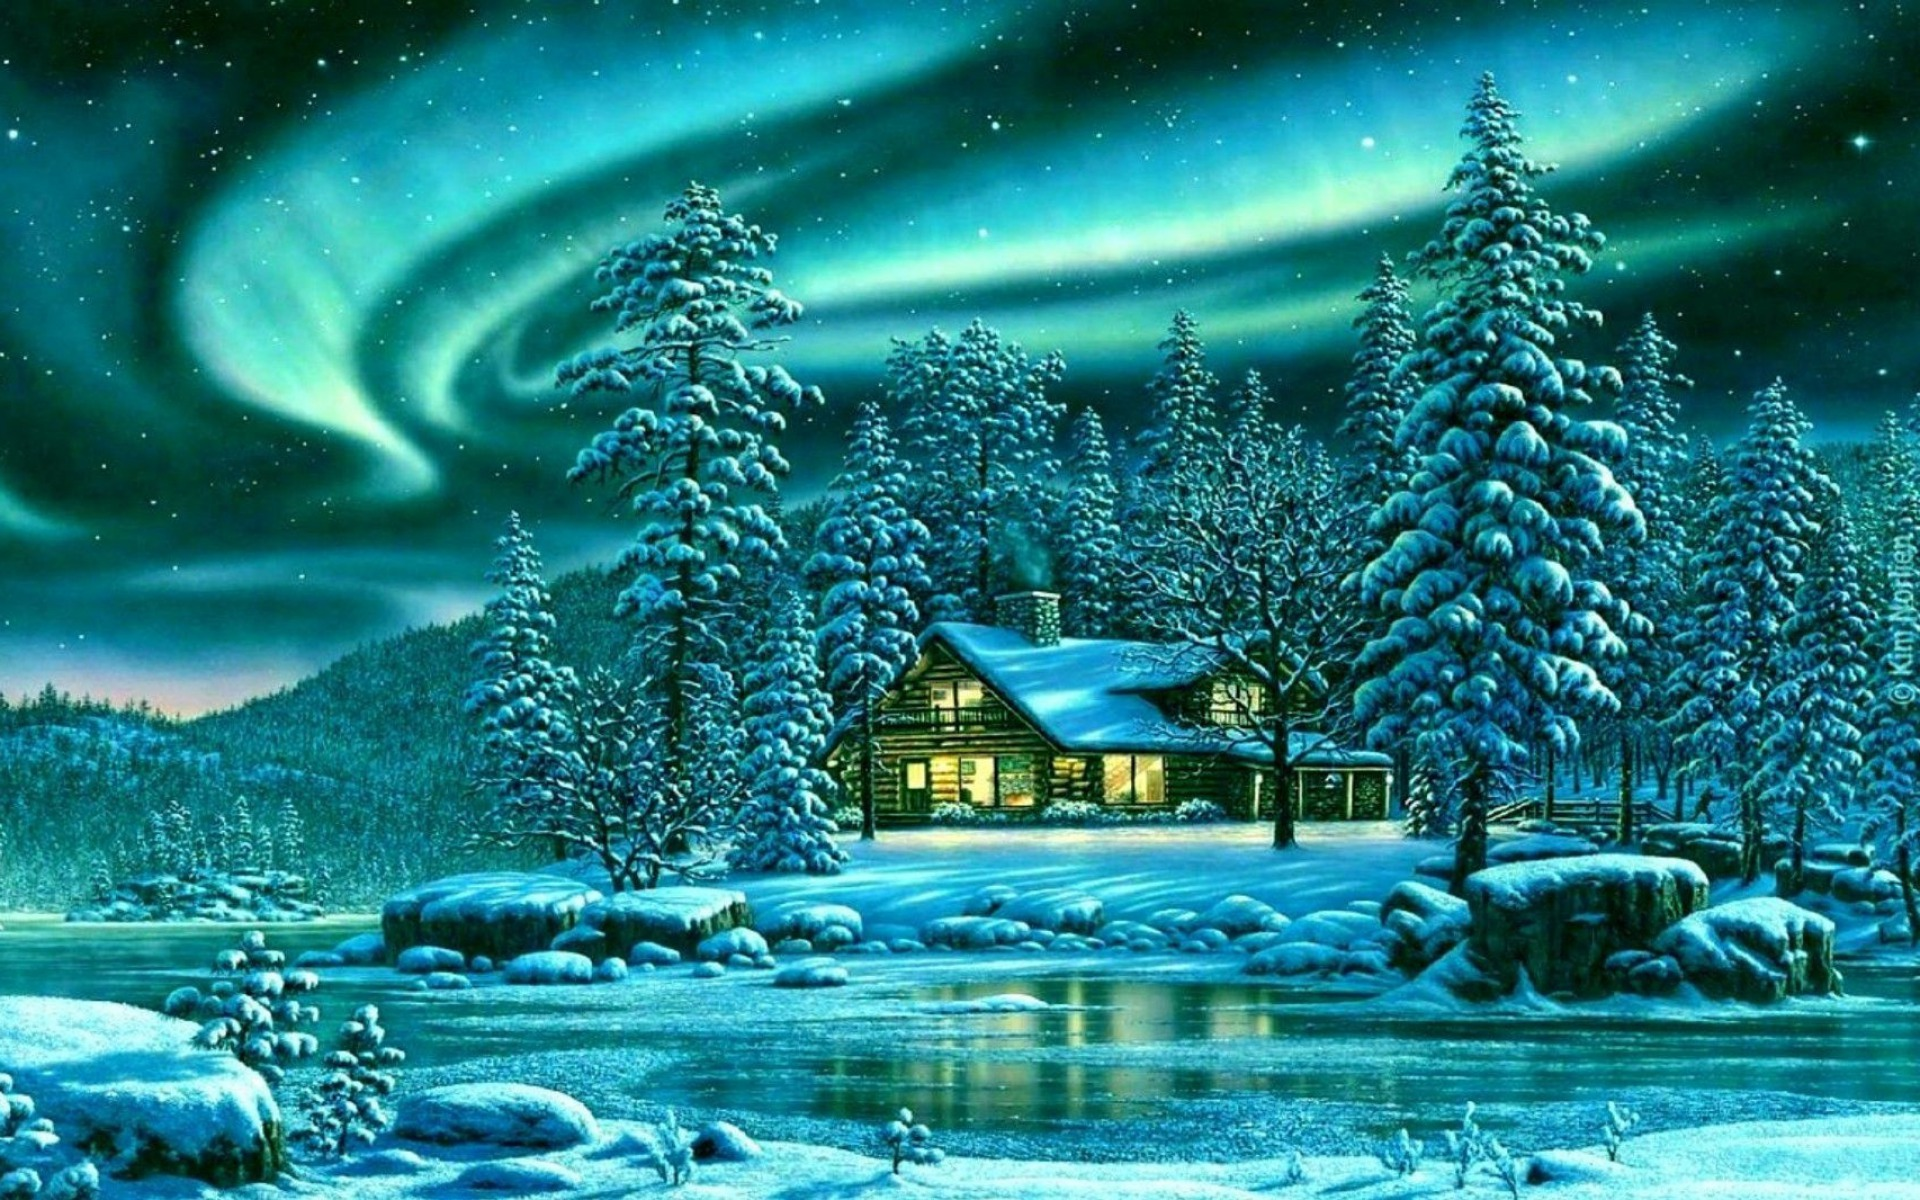 Animated Waterfall Wallpapers For Mobile Snowy Trees Cabin River Aurora Wallpapers Snowy Trees